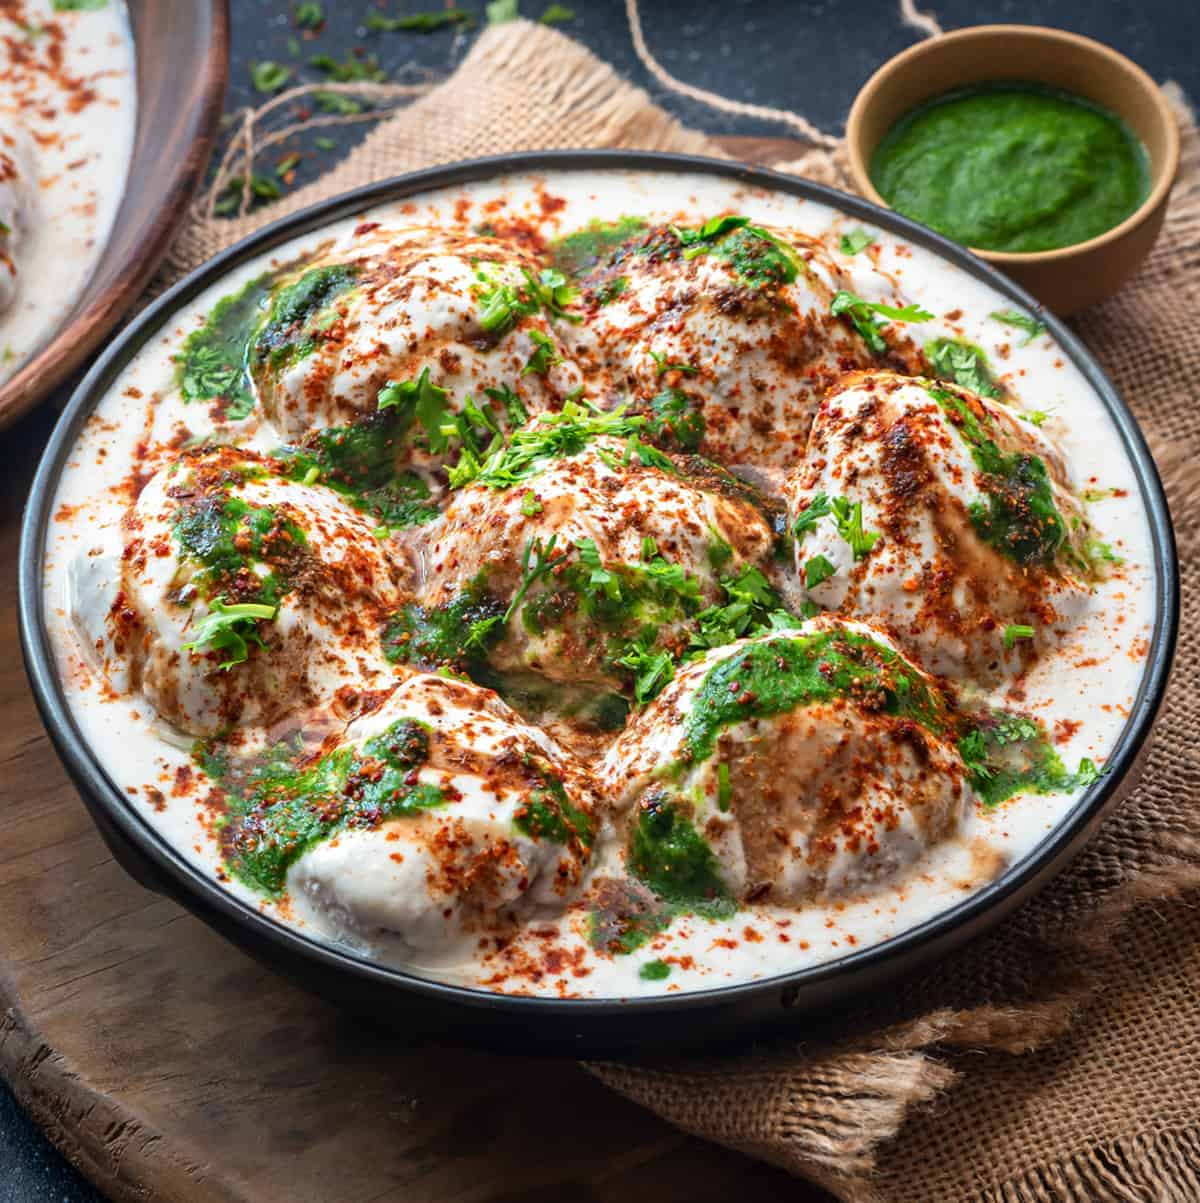 Dahi Vada topped with sweet and spicy chutney and served in black plate, green chutney at the back.